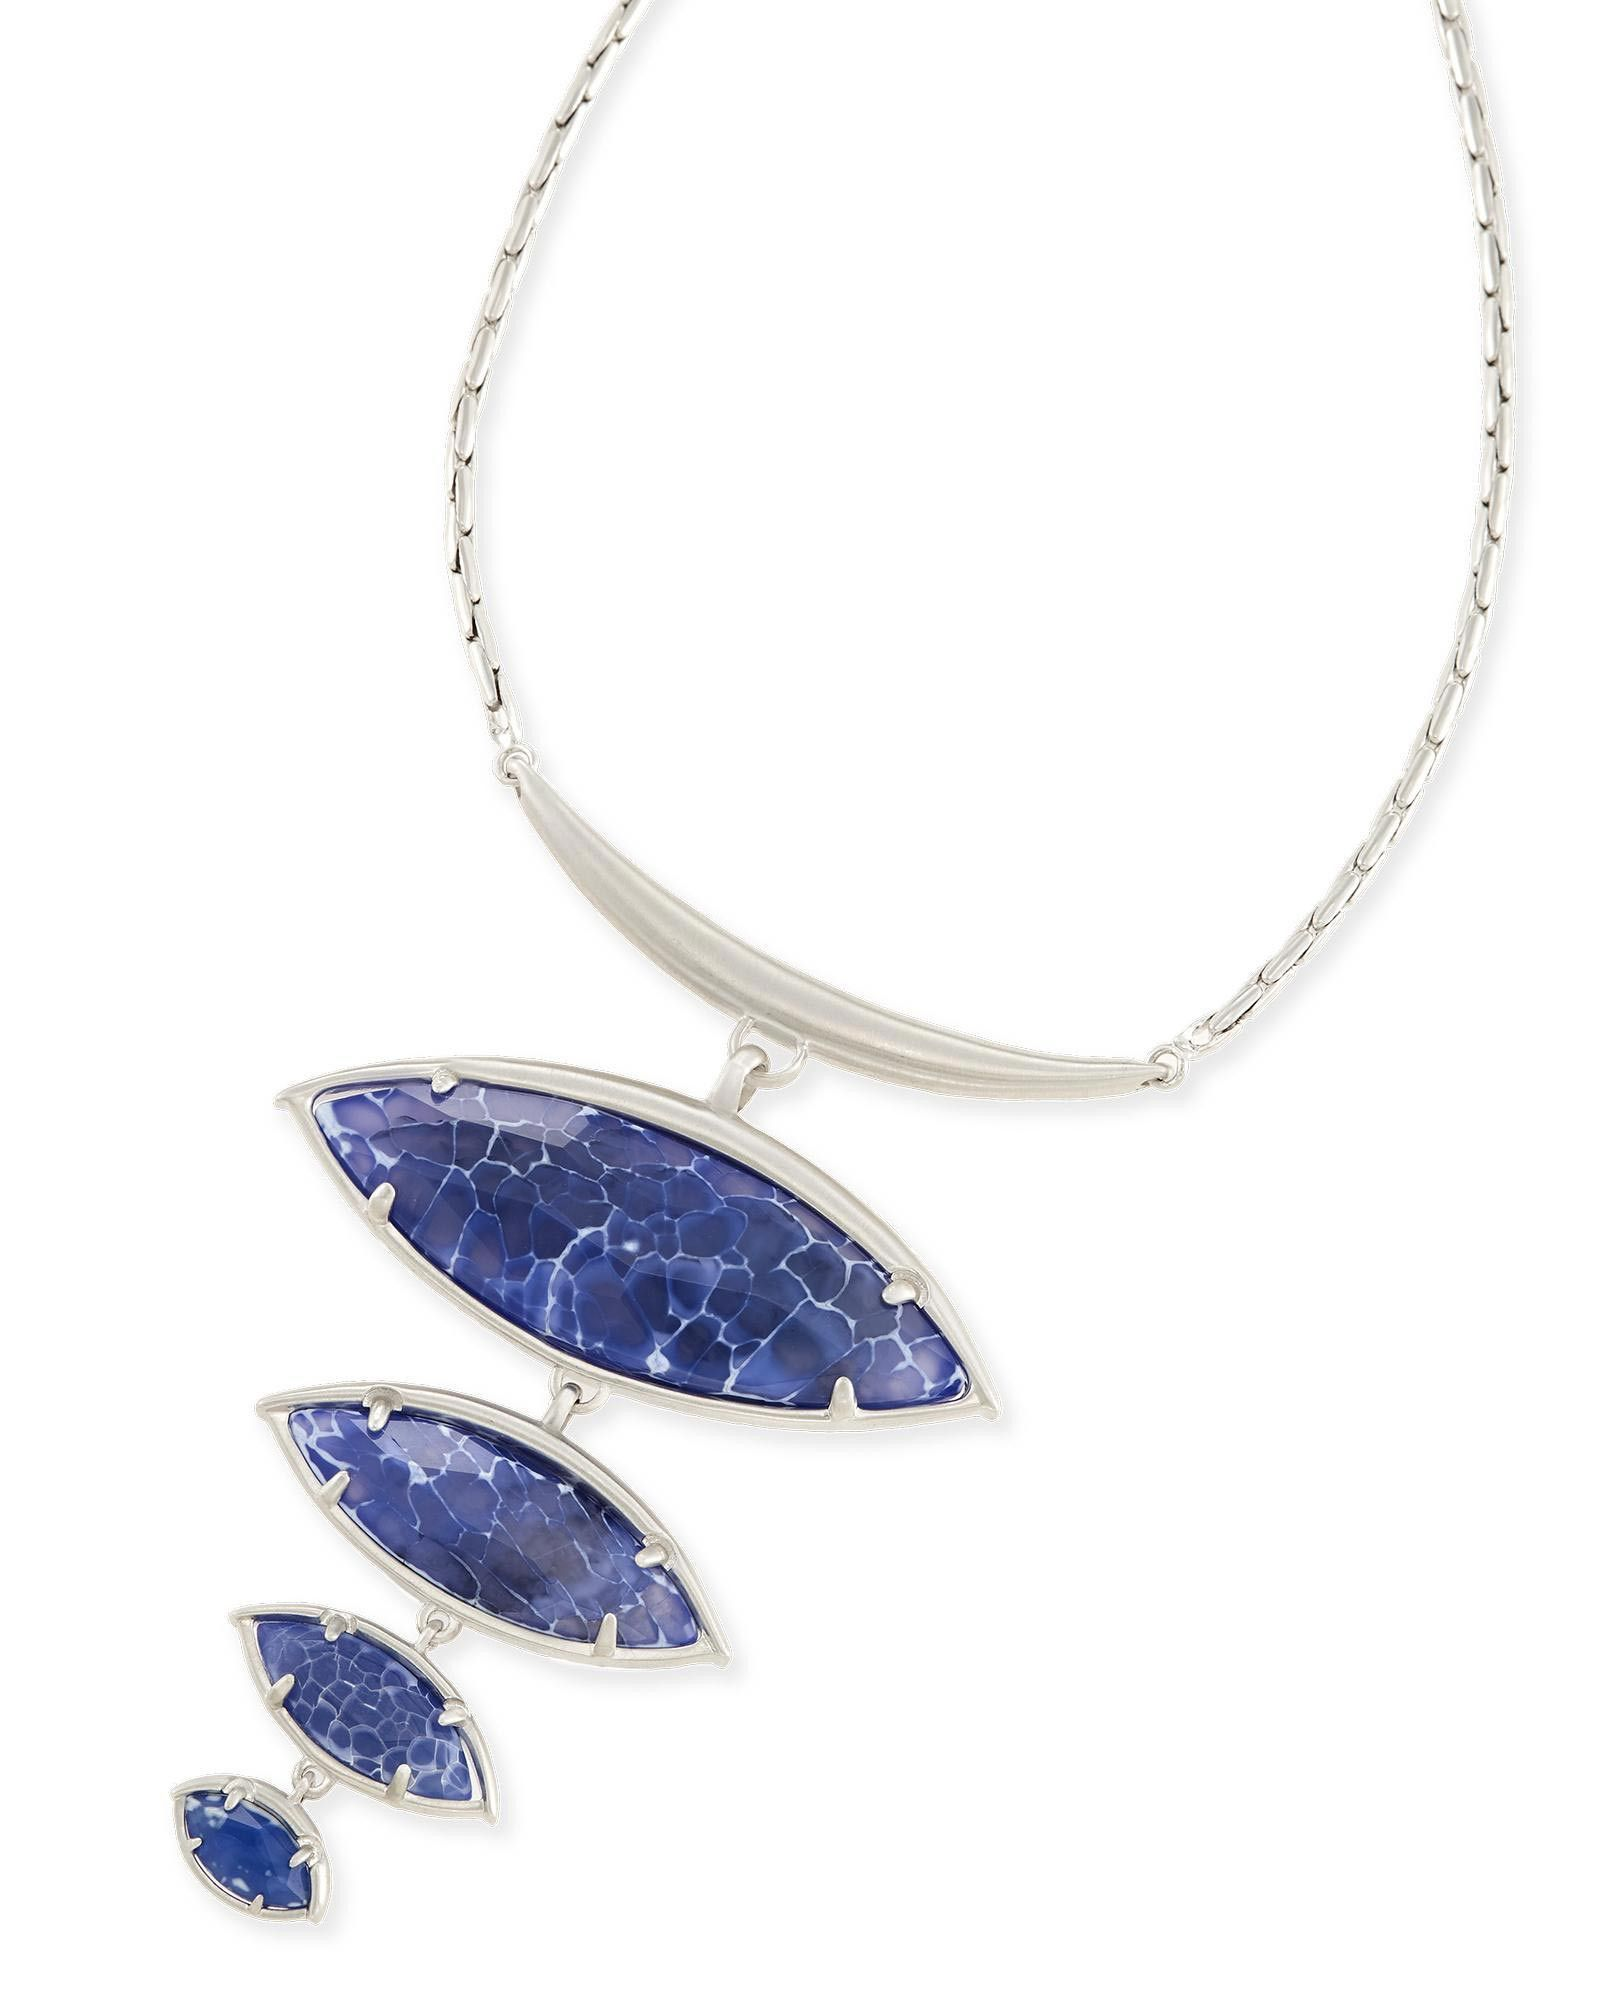 Kendra scott morris statement necklace in crackle blue agate